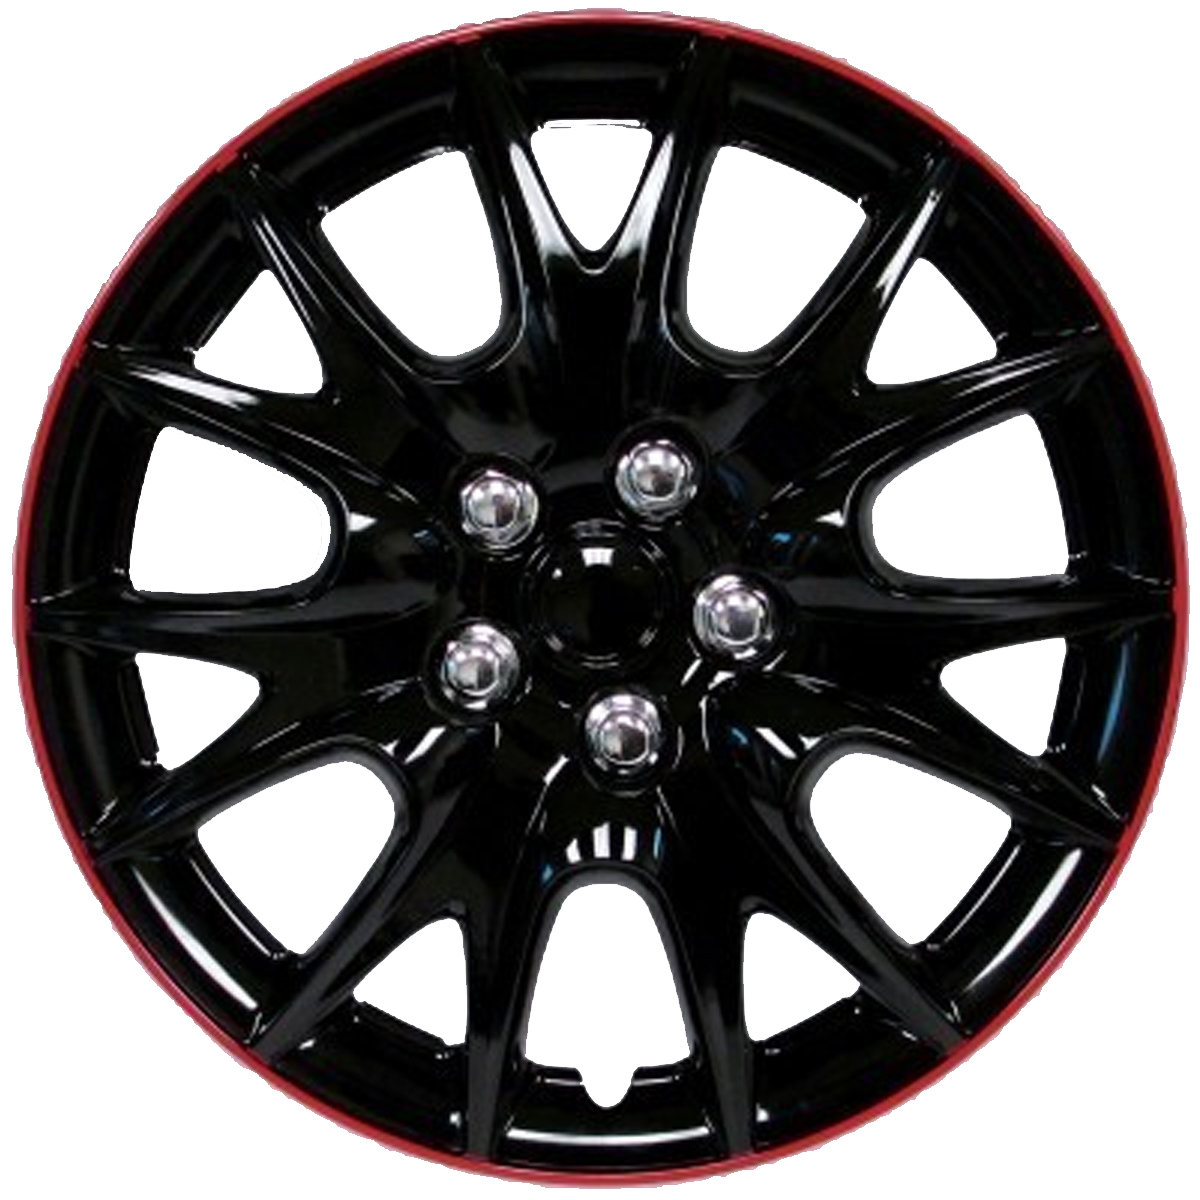 Wheel Covers Black / Red Lip Hs